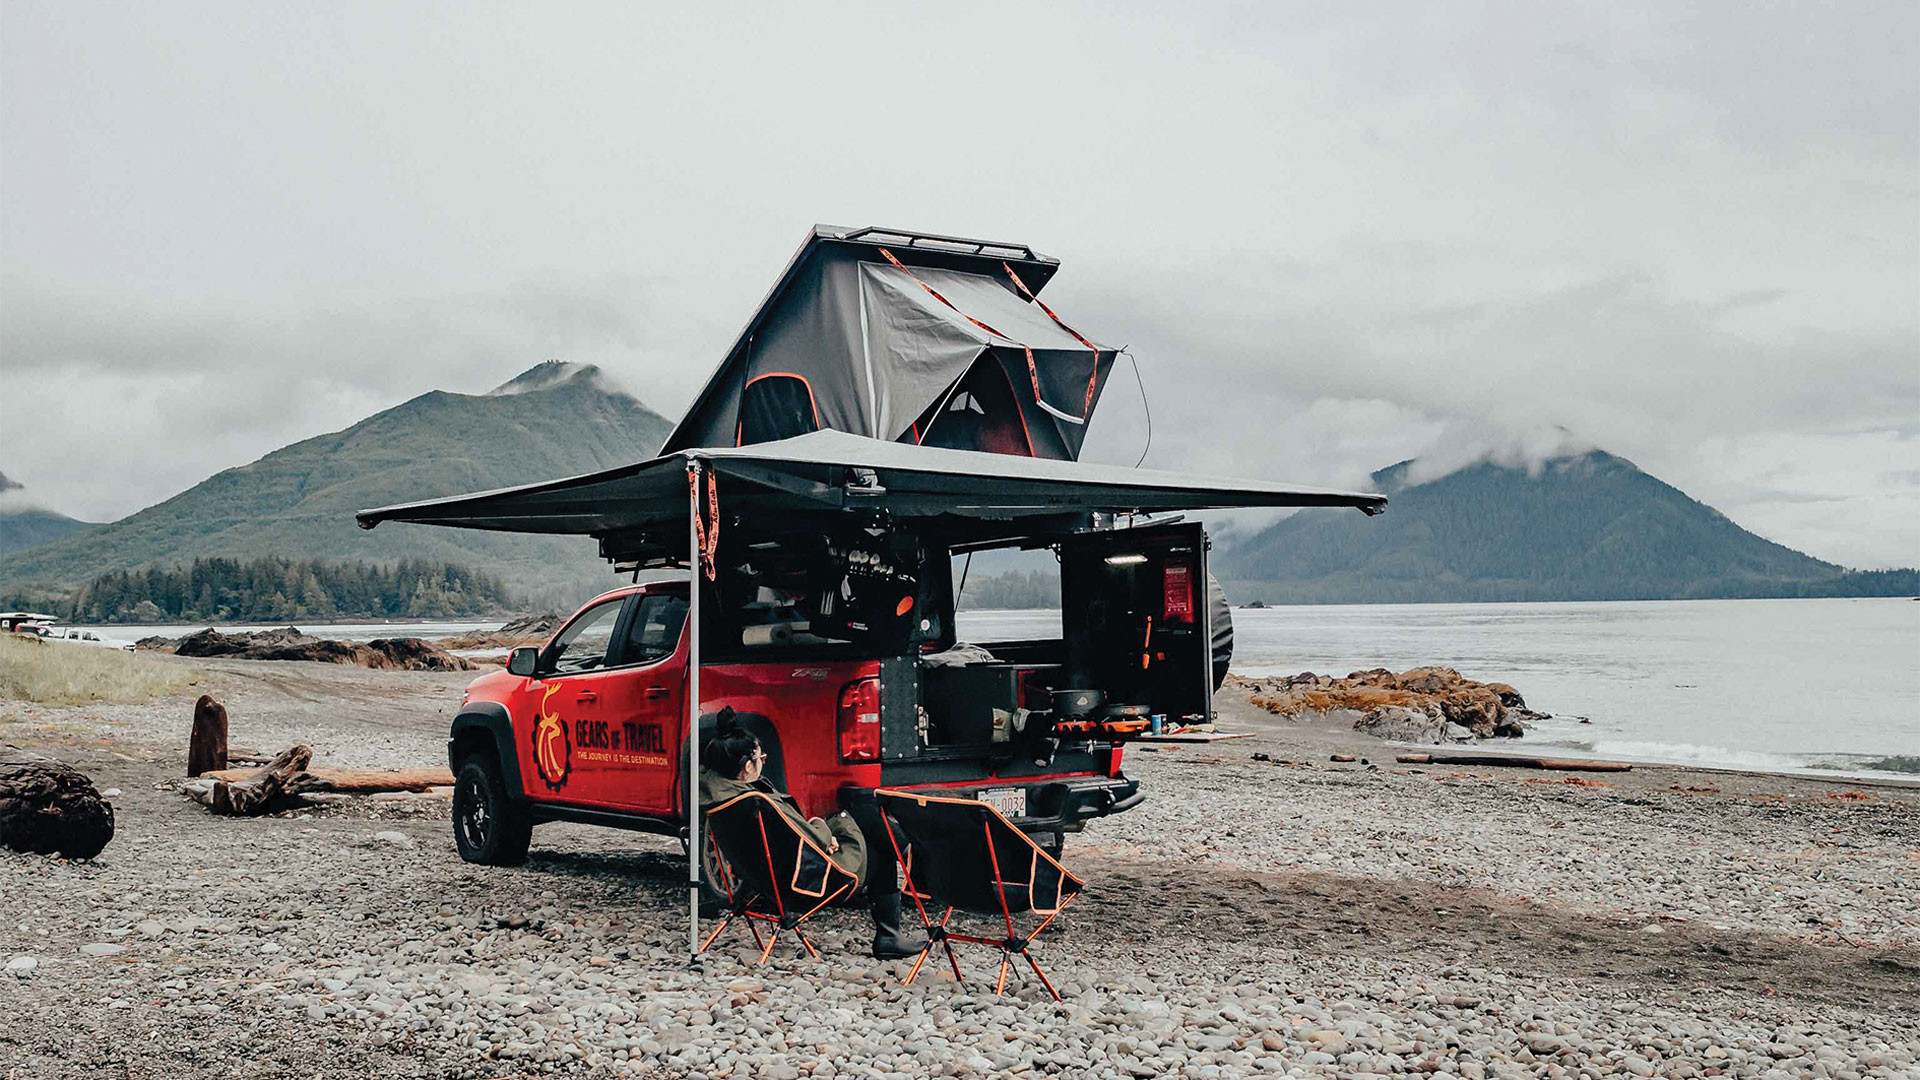 Gears of Travel, Canadian adventure | Chevrolet with extended overhead canopy camper